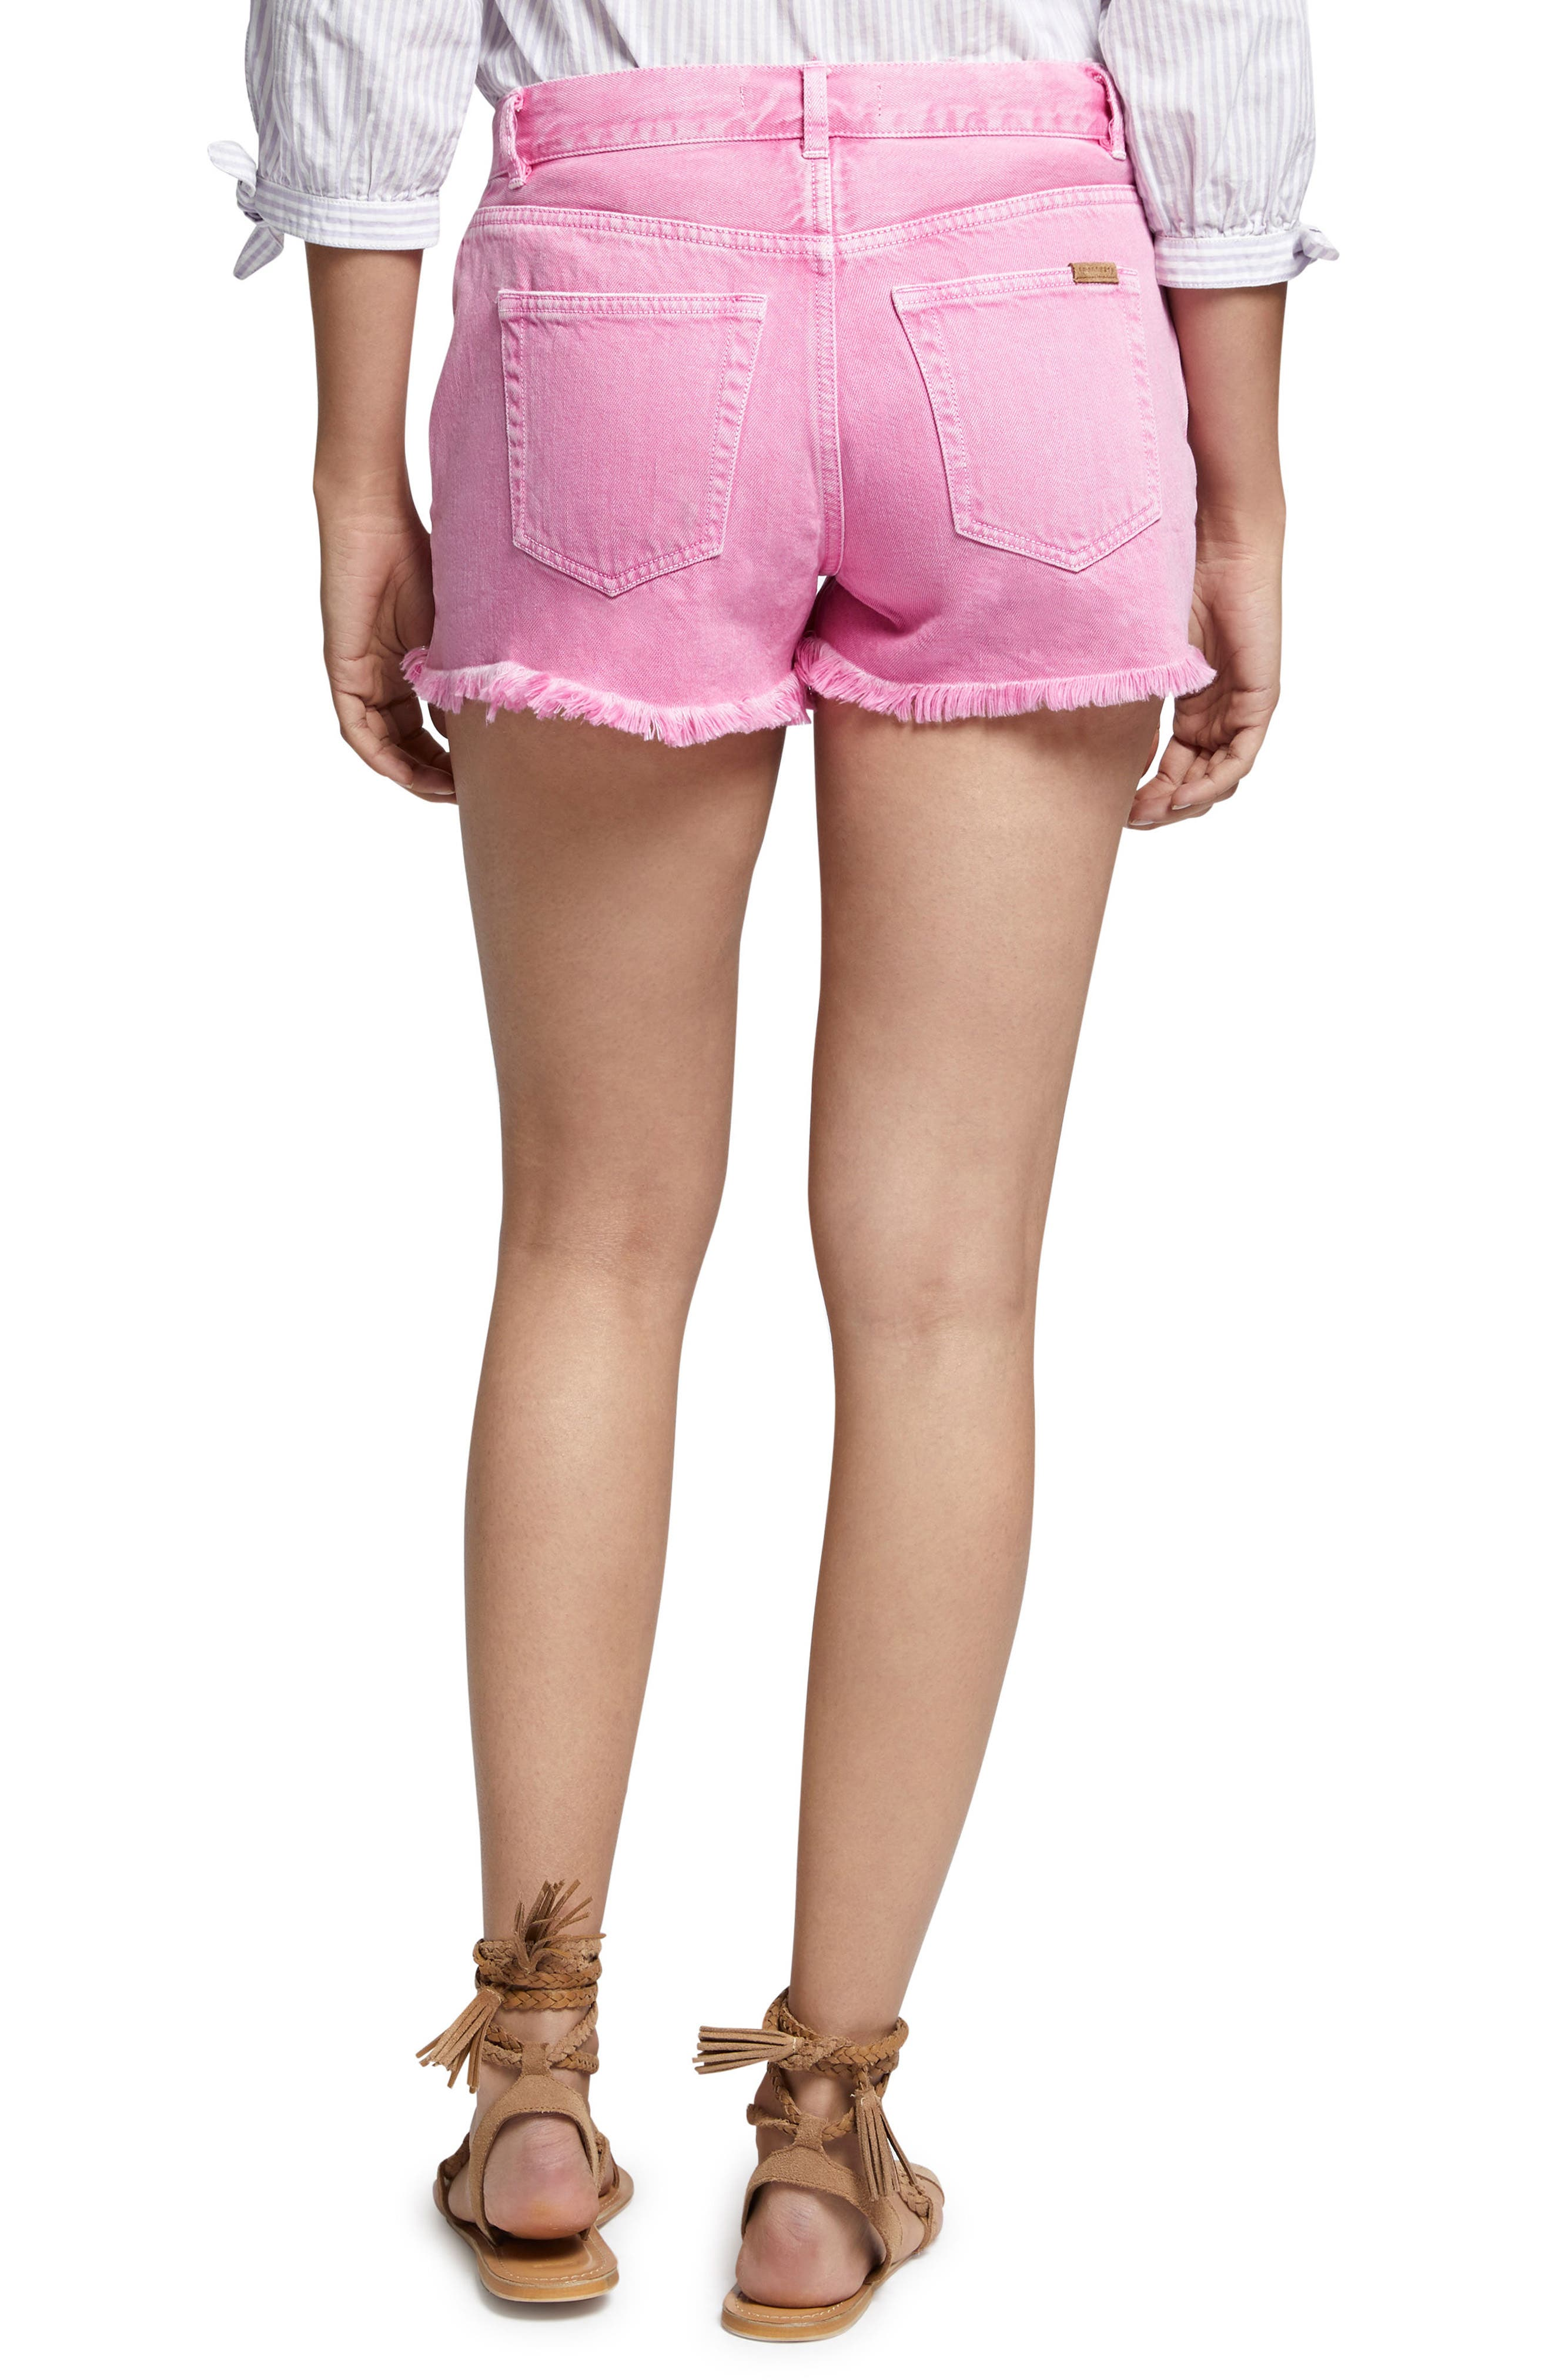 Wild Cherry Fringed Jean Shorts,                             Alternate thumbnail 2, color,                             Washed Wild Cherry